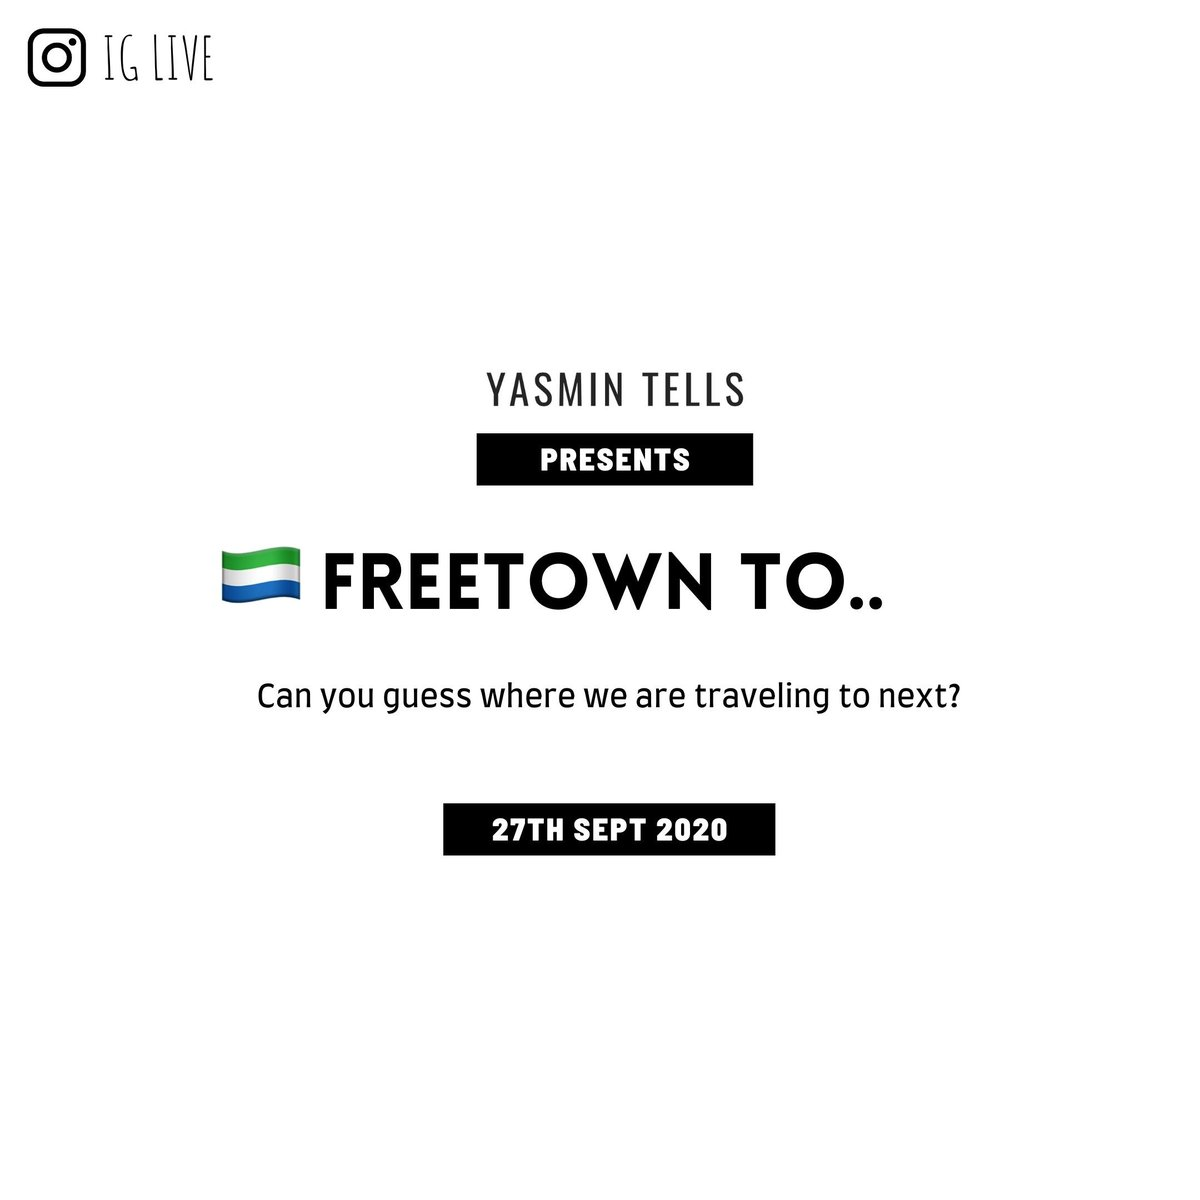 How dare I forget to share this with the Twitter fam!  Make your guess. Destination will be revealed tomorrow! #Freetownto #travelafrica #africancity #westafrica #yasmintells #africancontent https://t.co/49ZjXPXPct